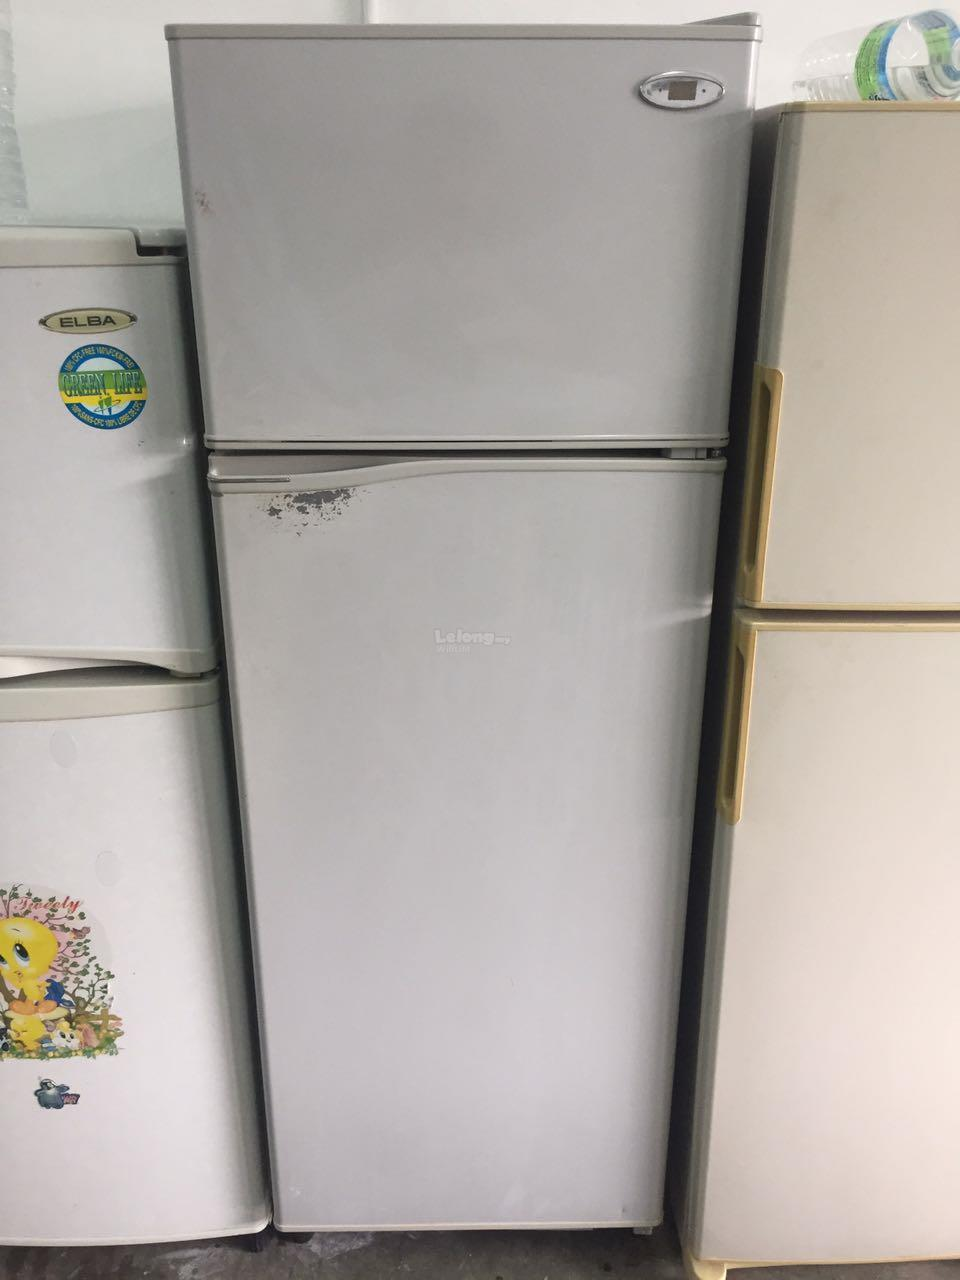 Toshiba 2 Doors Peti Sejuk Freezer Refurbish Recondition Refrigerator